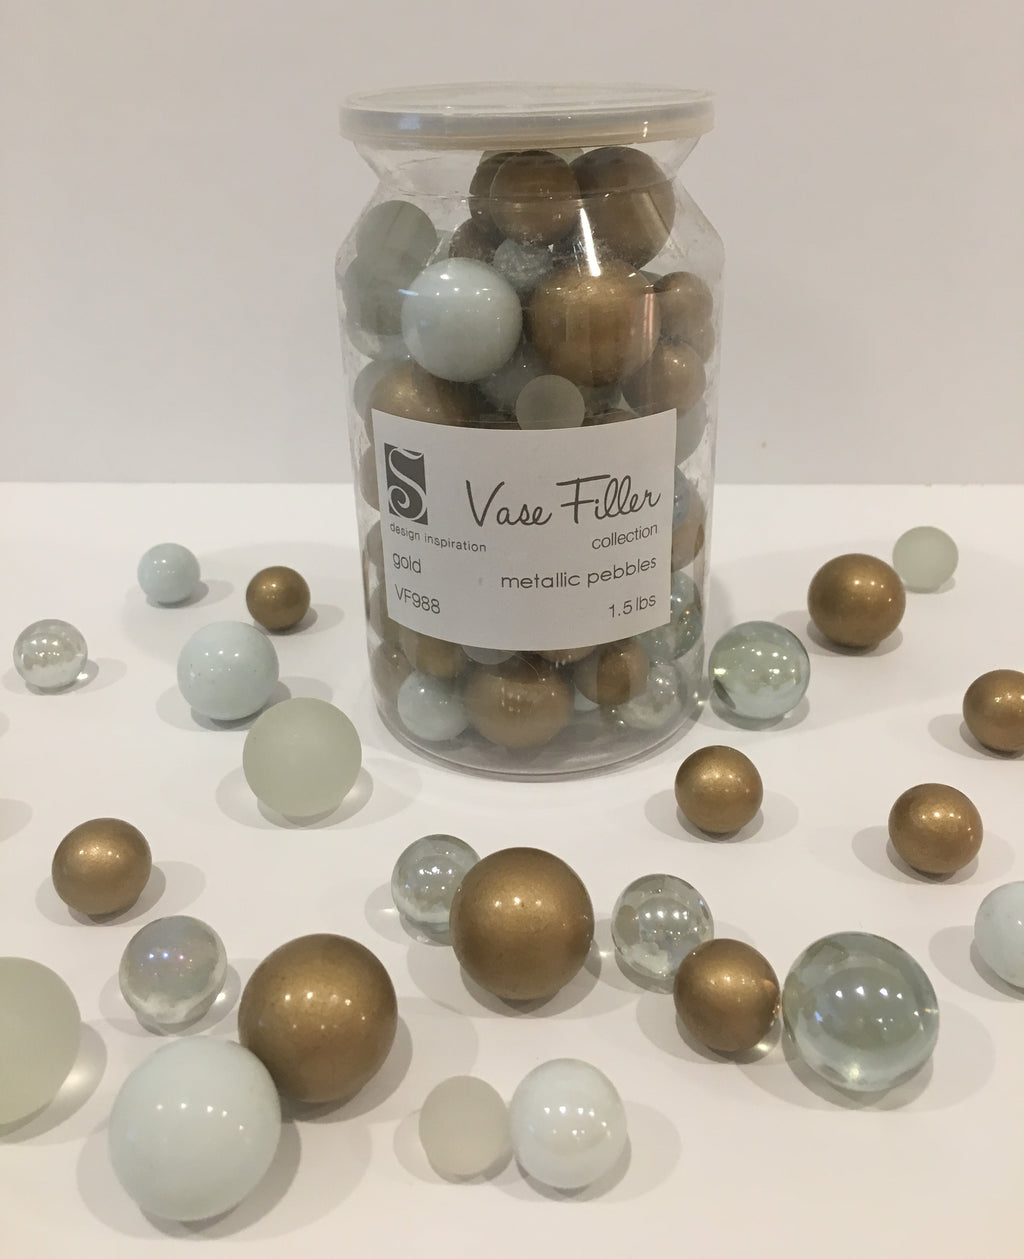 *Clearance* No Hole 80 Gold Theme Glass Marbles - Jumbo/Assorted Sizes Vase Fillers for Decorating Centerpieces